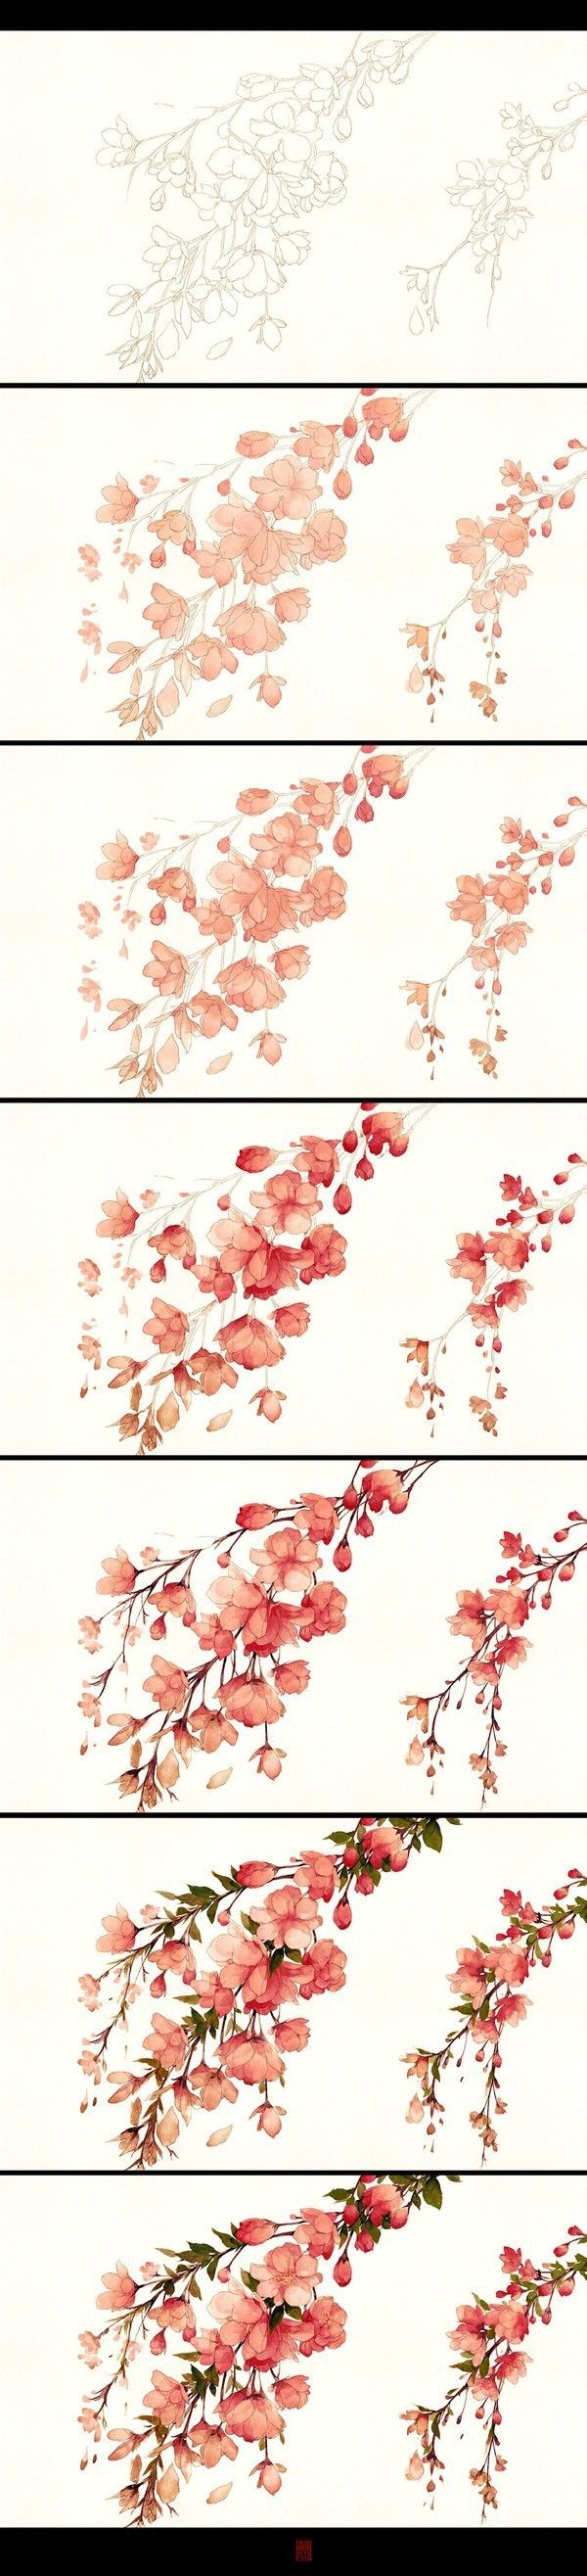 I love the building of the colors, how deep and delicate the flowers look. ★ || CHARACTER DESIGN REFERENCES (www.facebook.com/CharacterDesignReferences & pinterest.com/characterdesigh) • Love Character Design? Join the Character Design Challenge (link→ www.facebook.com/groups/CharacterDesignChallenge) Share your unique vision of a theme every month, promote your art and make new friends in a community of over 20.000 artists! || ★